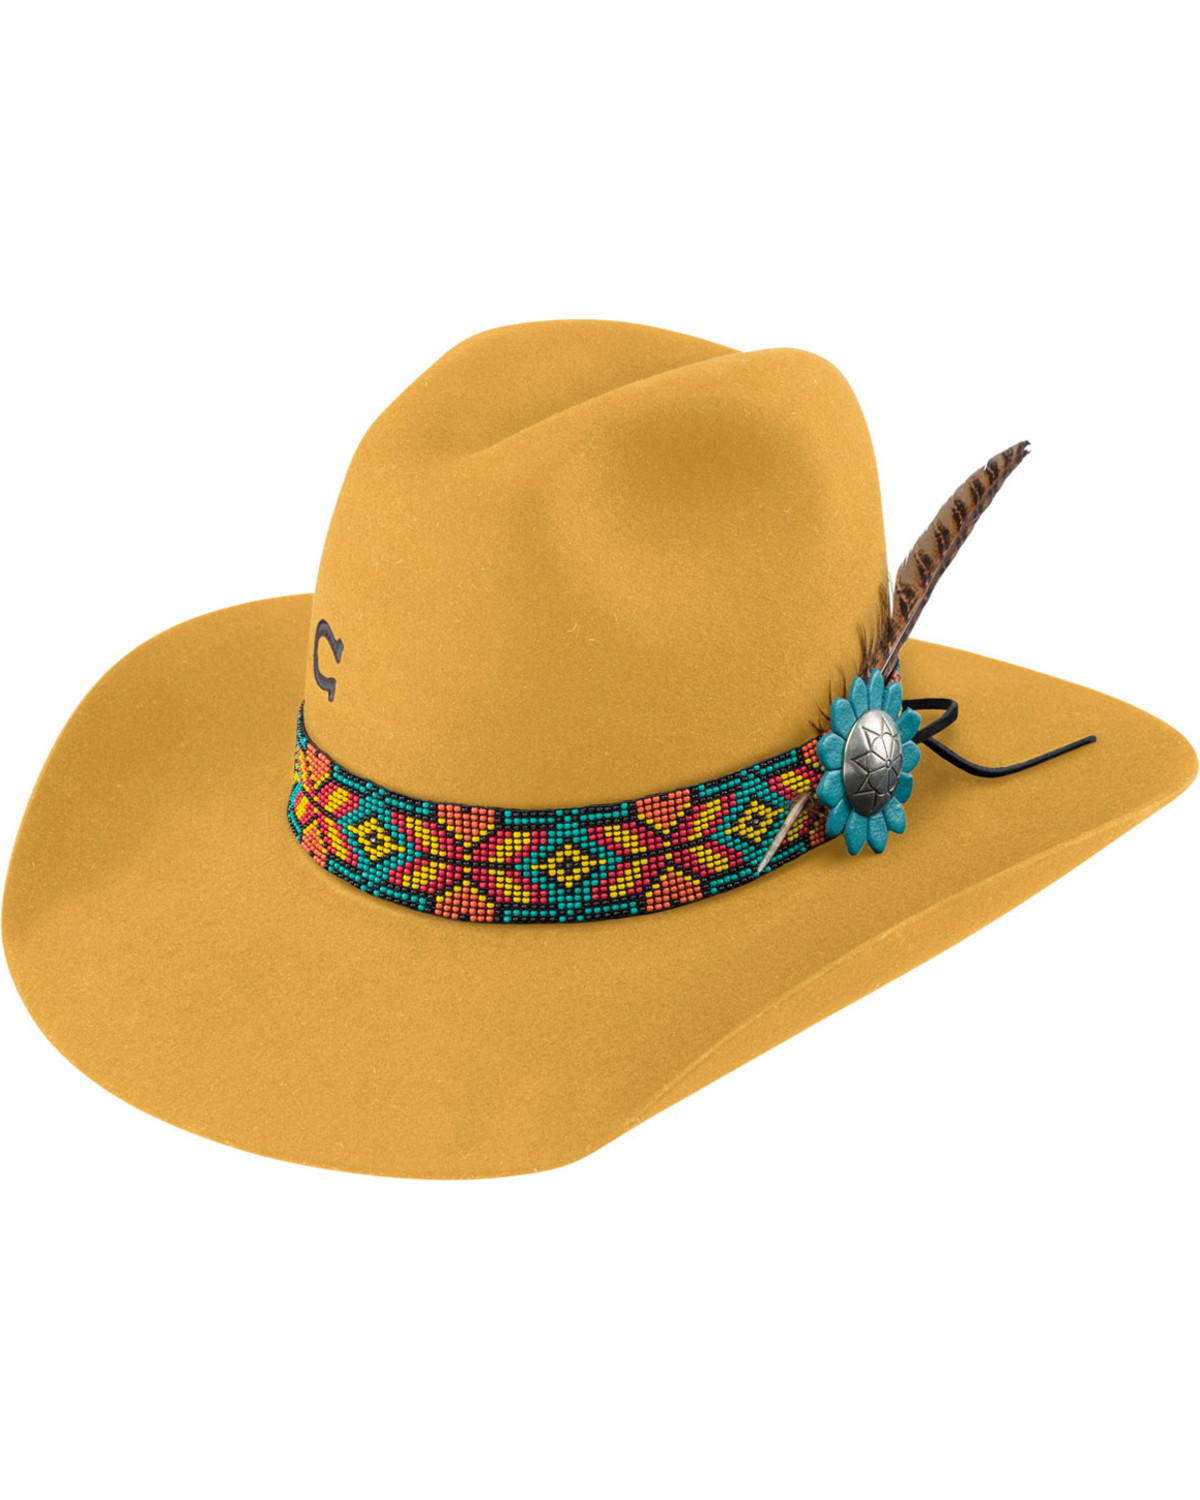 3ae782ff1 Charlie 1 Horse Women's Yellow Gold Digger Hat